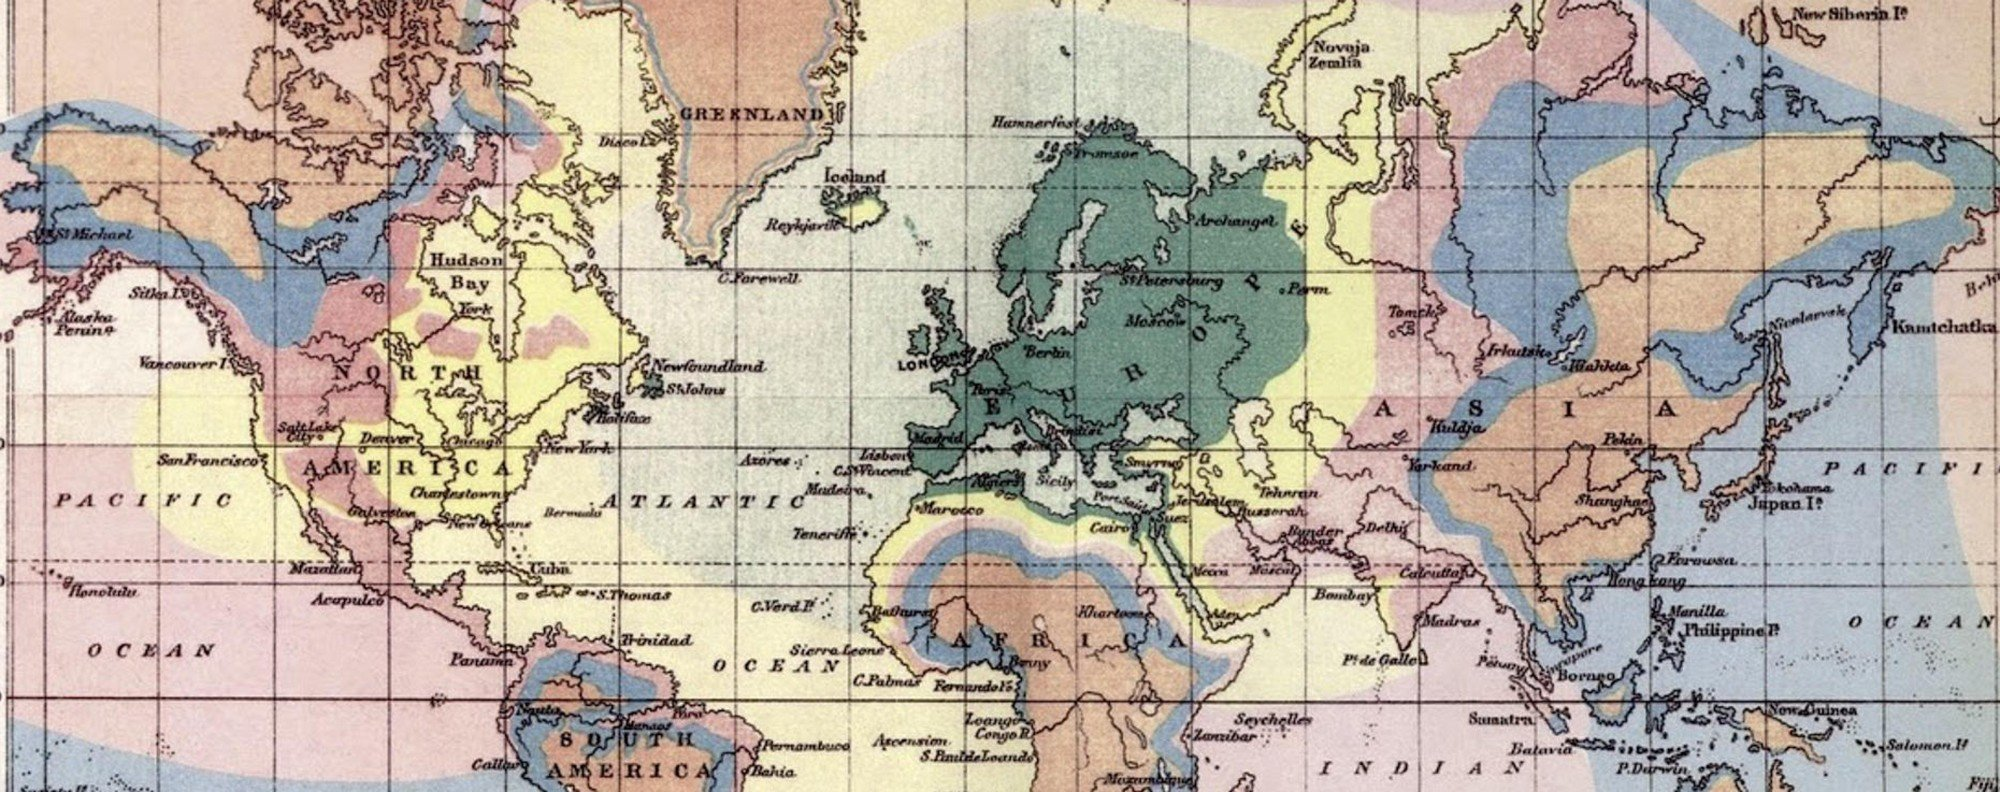 An isochronic map by Francis Galton.